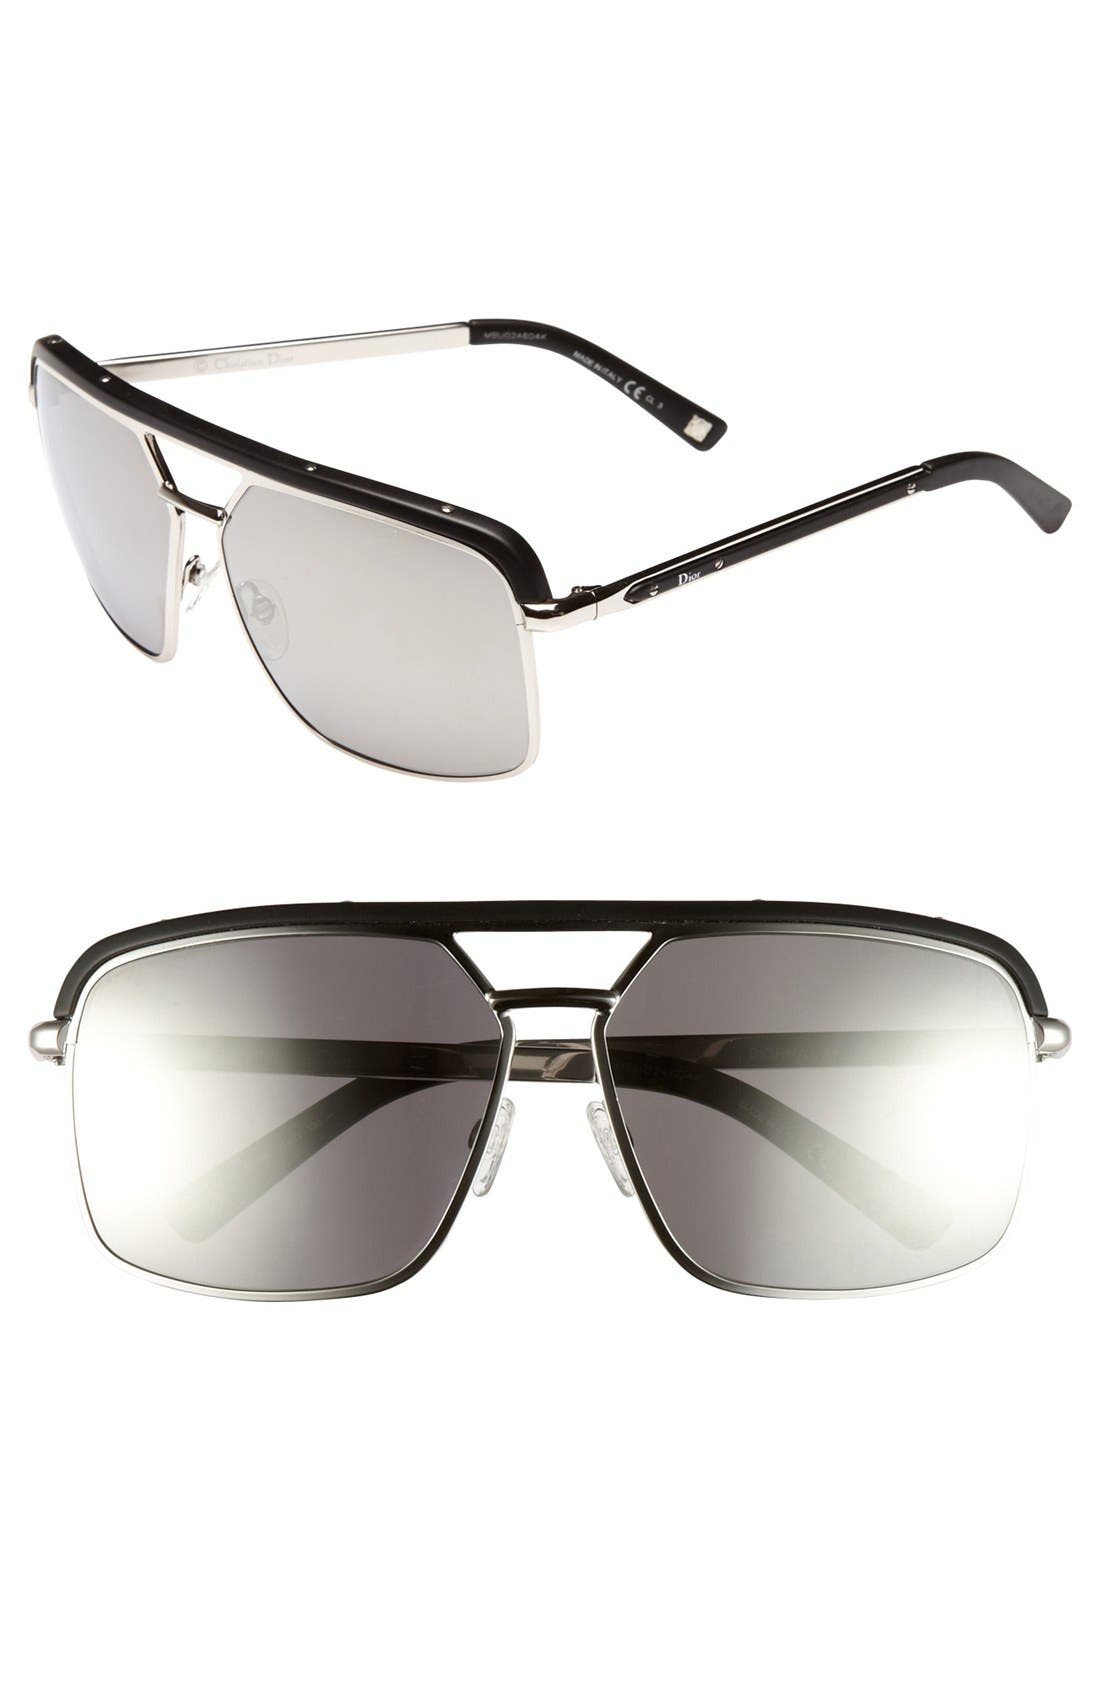 Alternate Image 1 Selected - Dior 'Havane' 61mm Metal Aviator Sunglasses